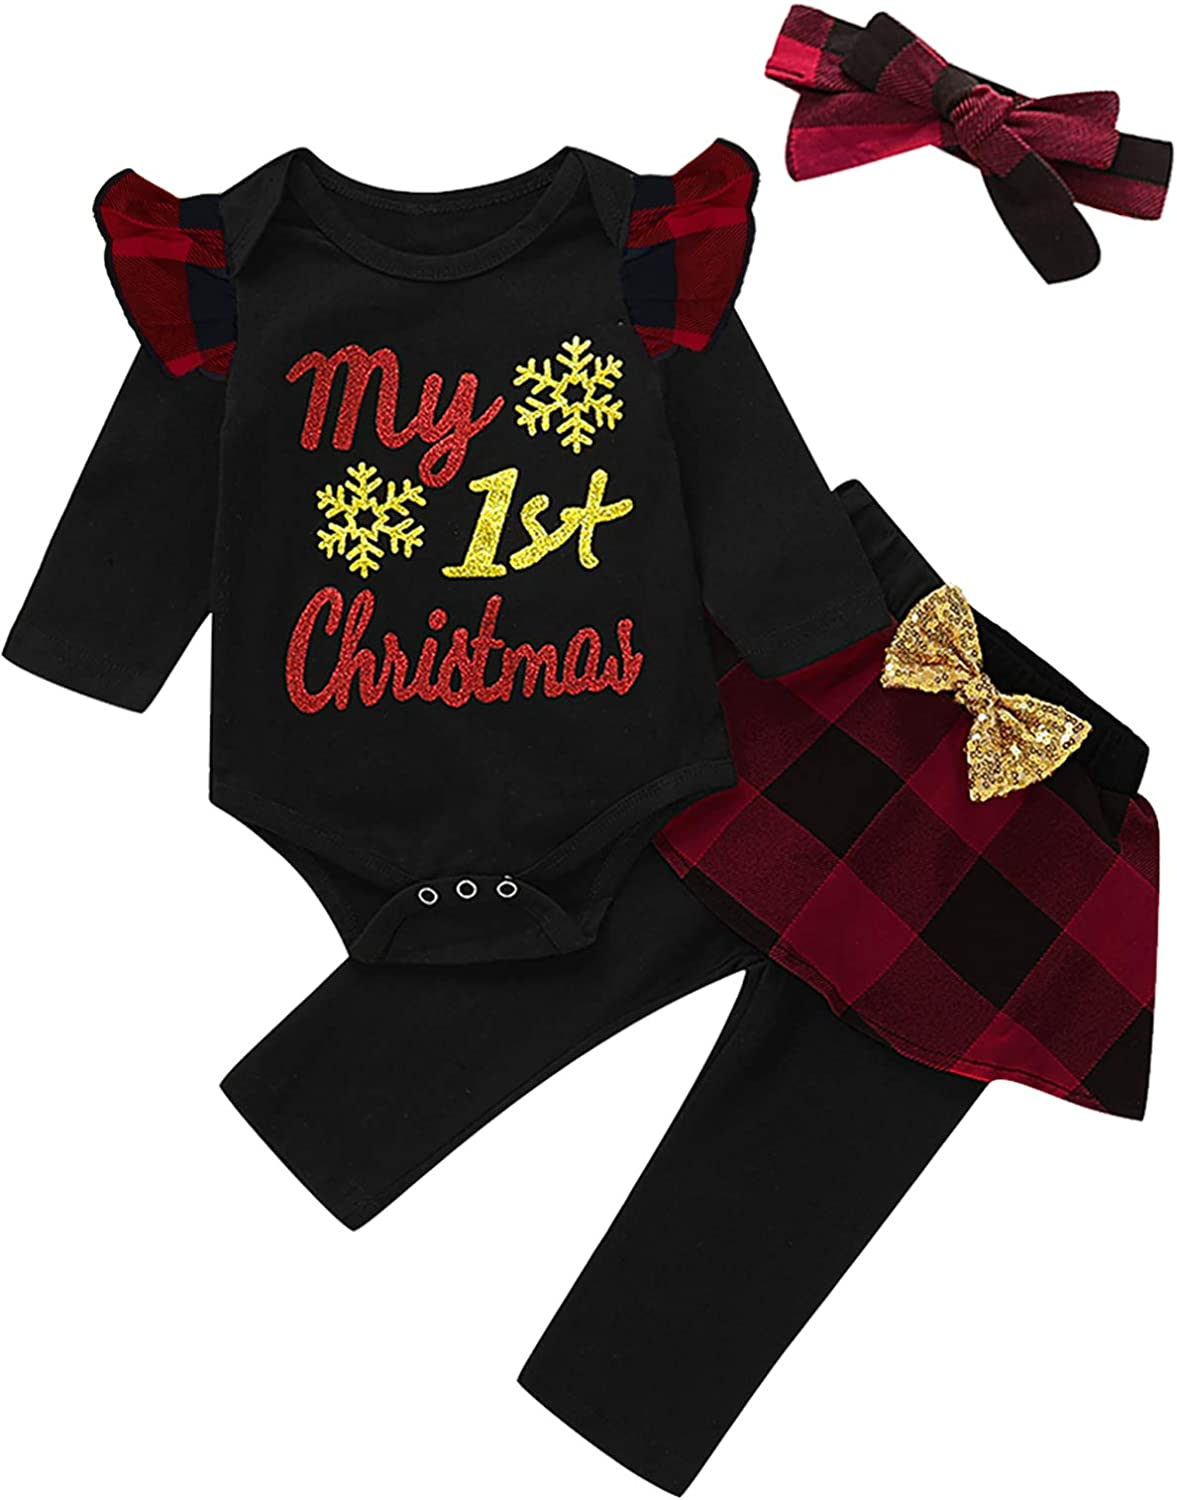 Mutiggee First Christmas Outfit Baby Plaid Pant Cloth Ranking TOP19 Max 41% OFF Girls Xmas